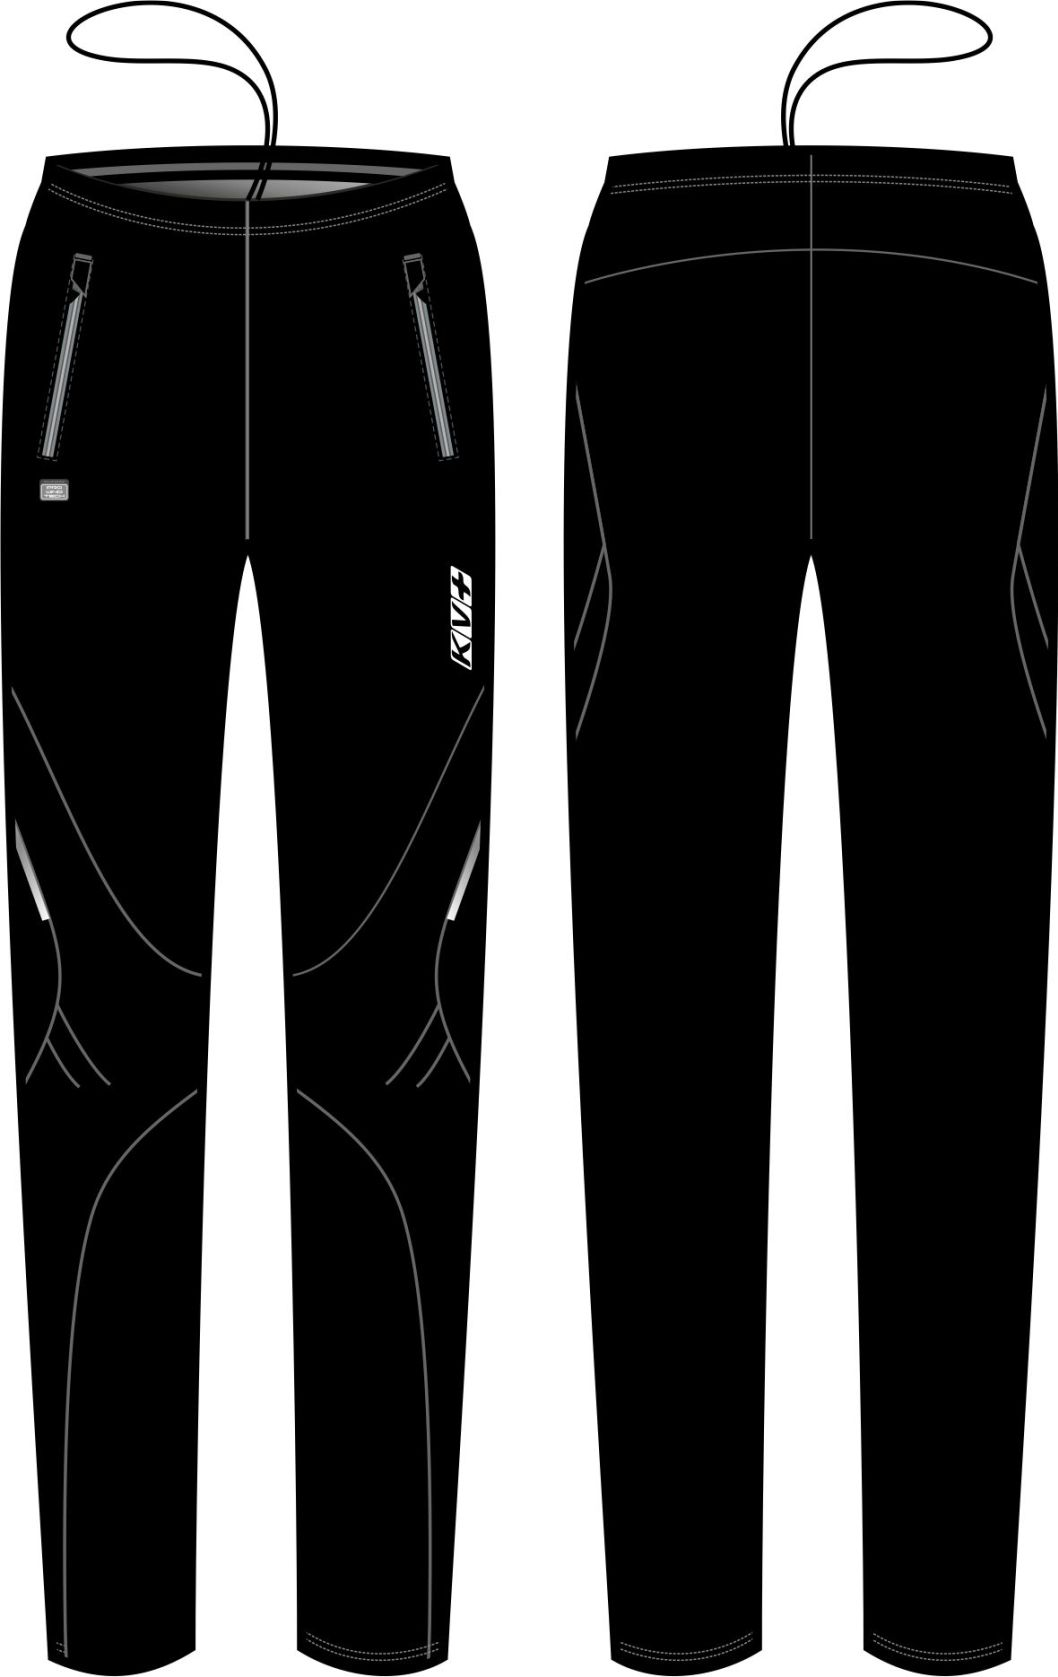 EXCLUSIVE PANTS WOMAN (black)